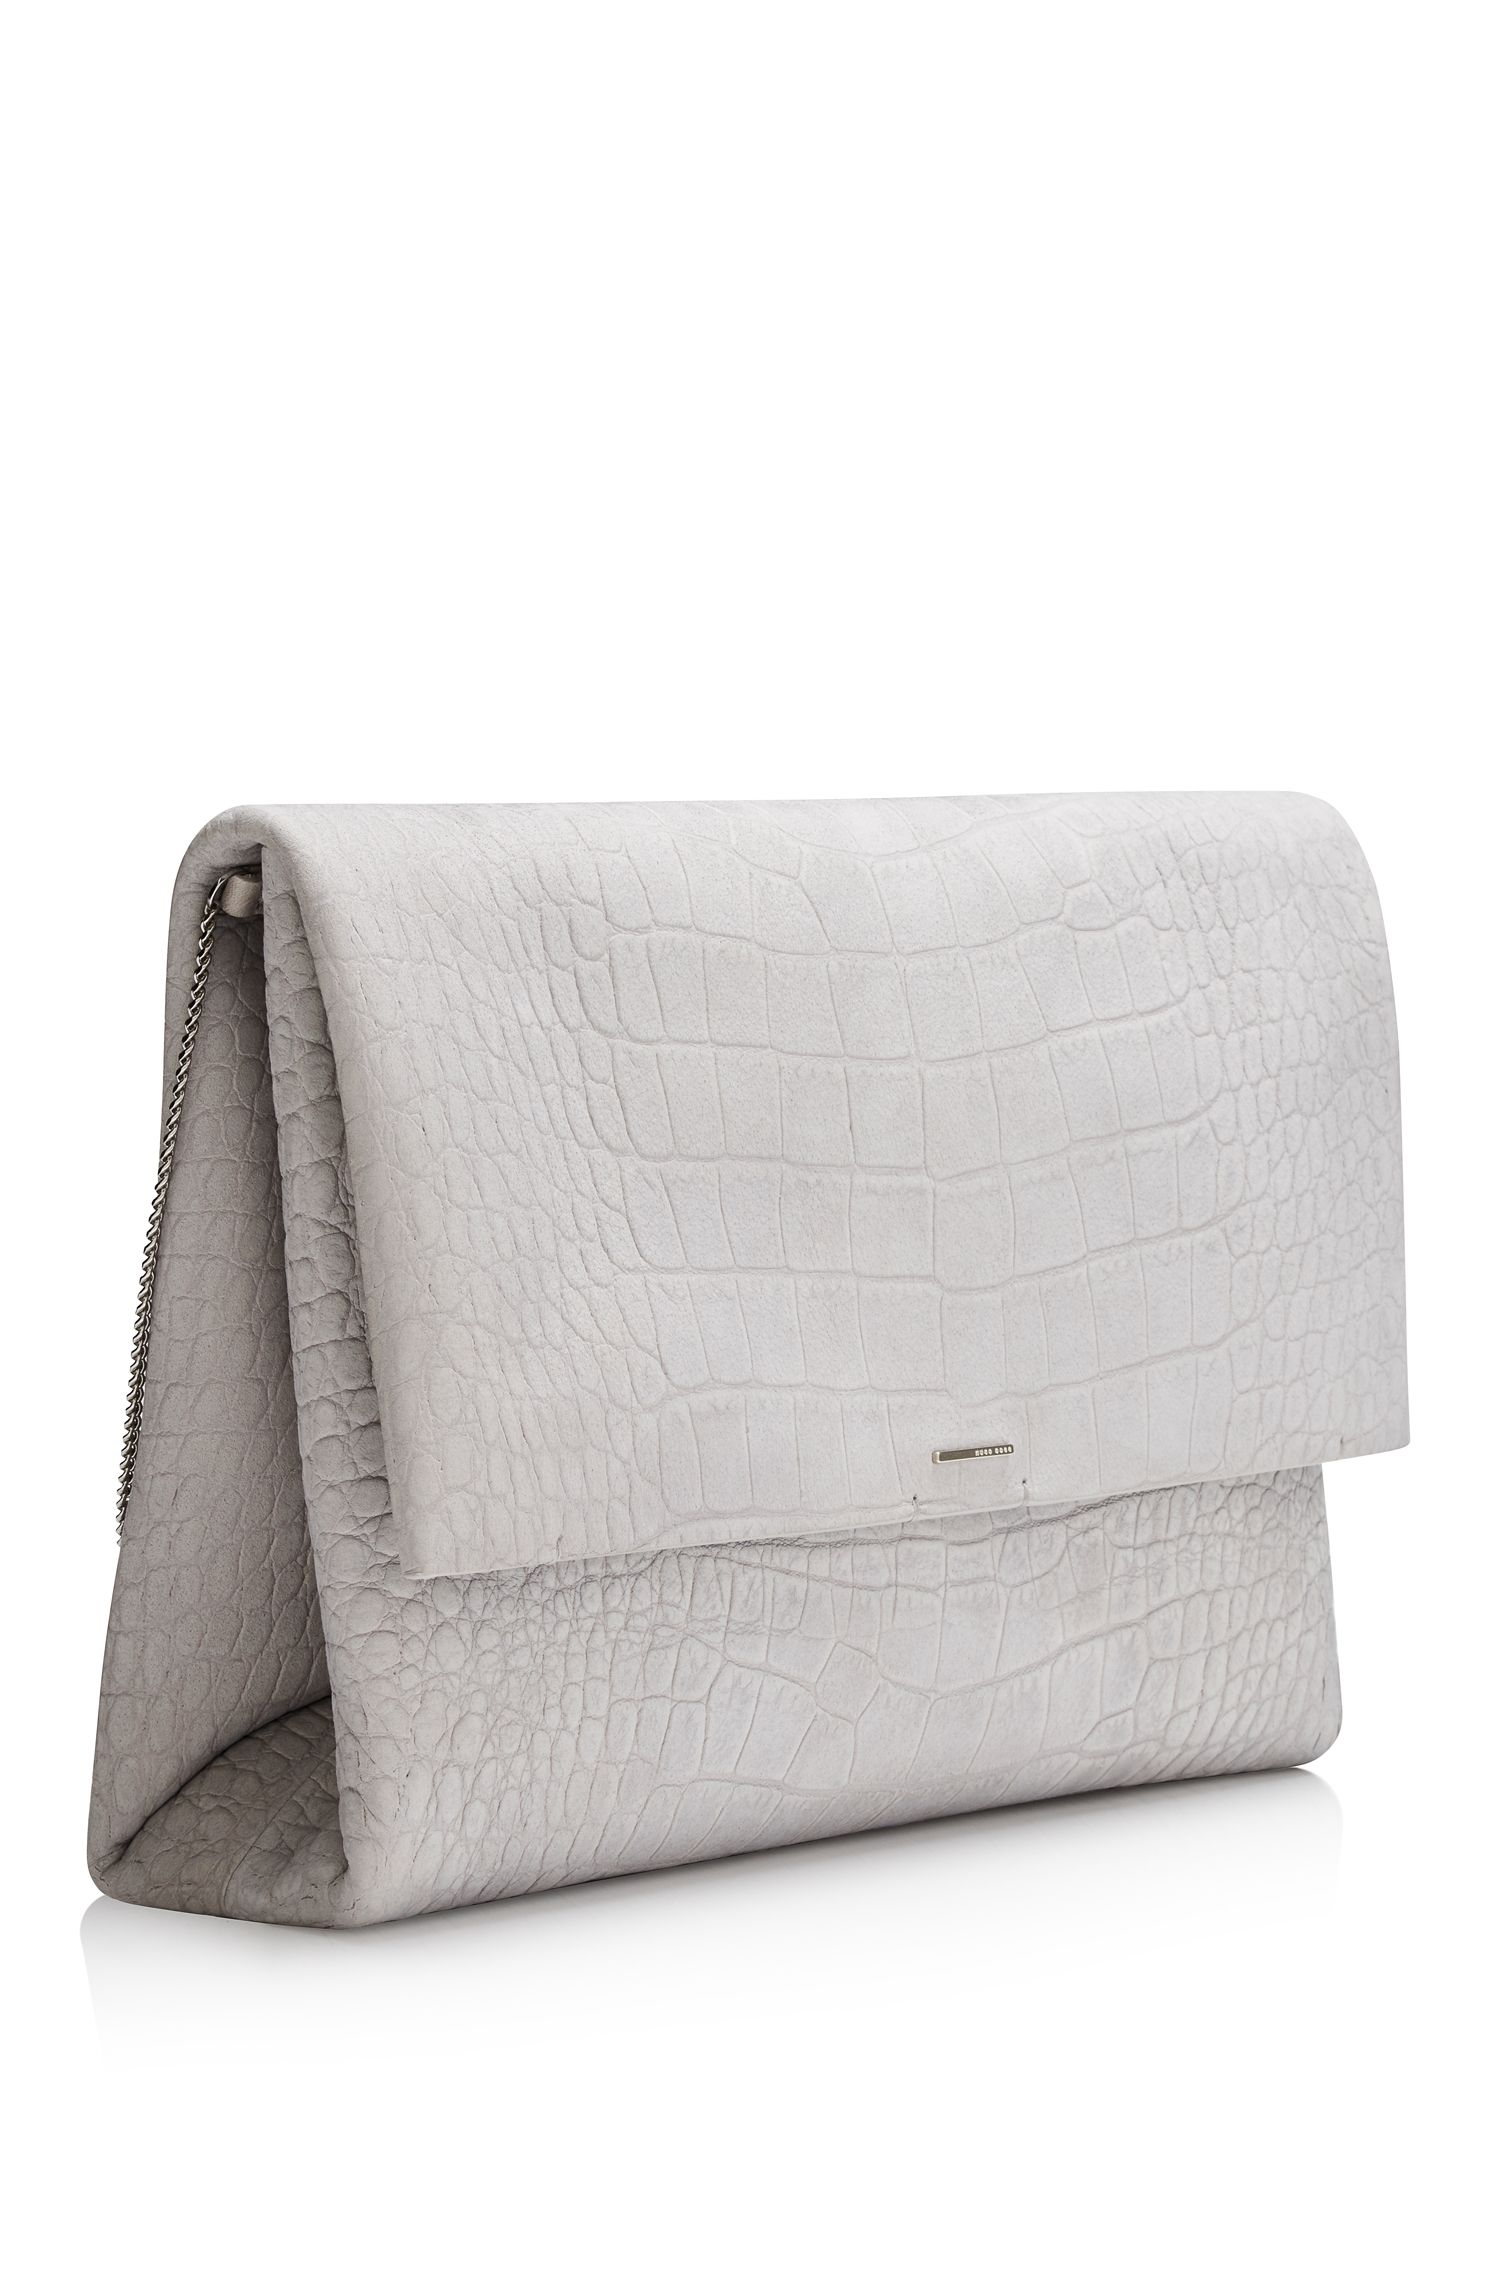 'Luxury Staple C-CN' | Calfskin Embossed Clutch with Chain Strap